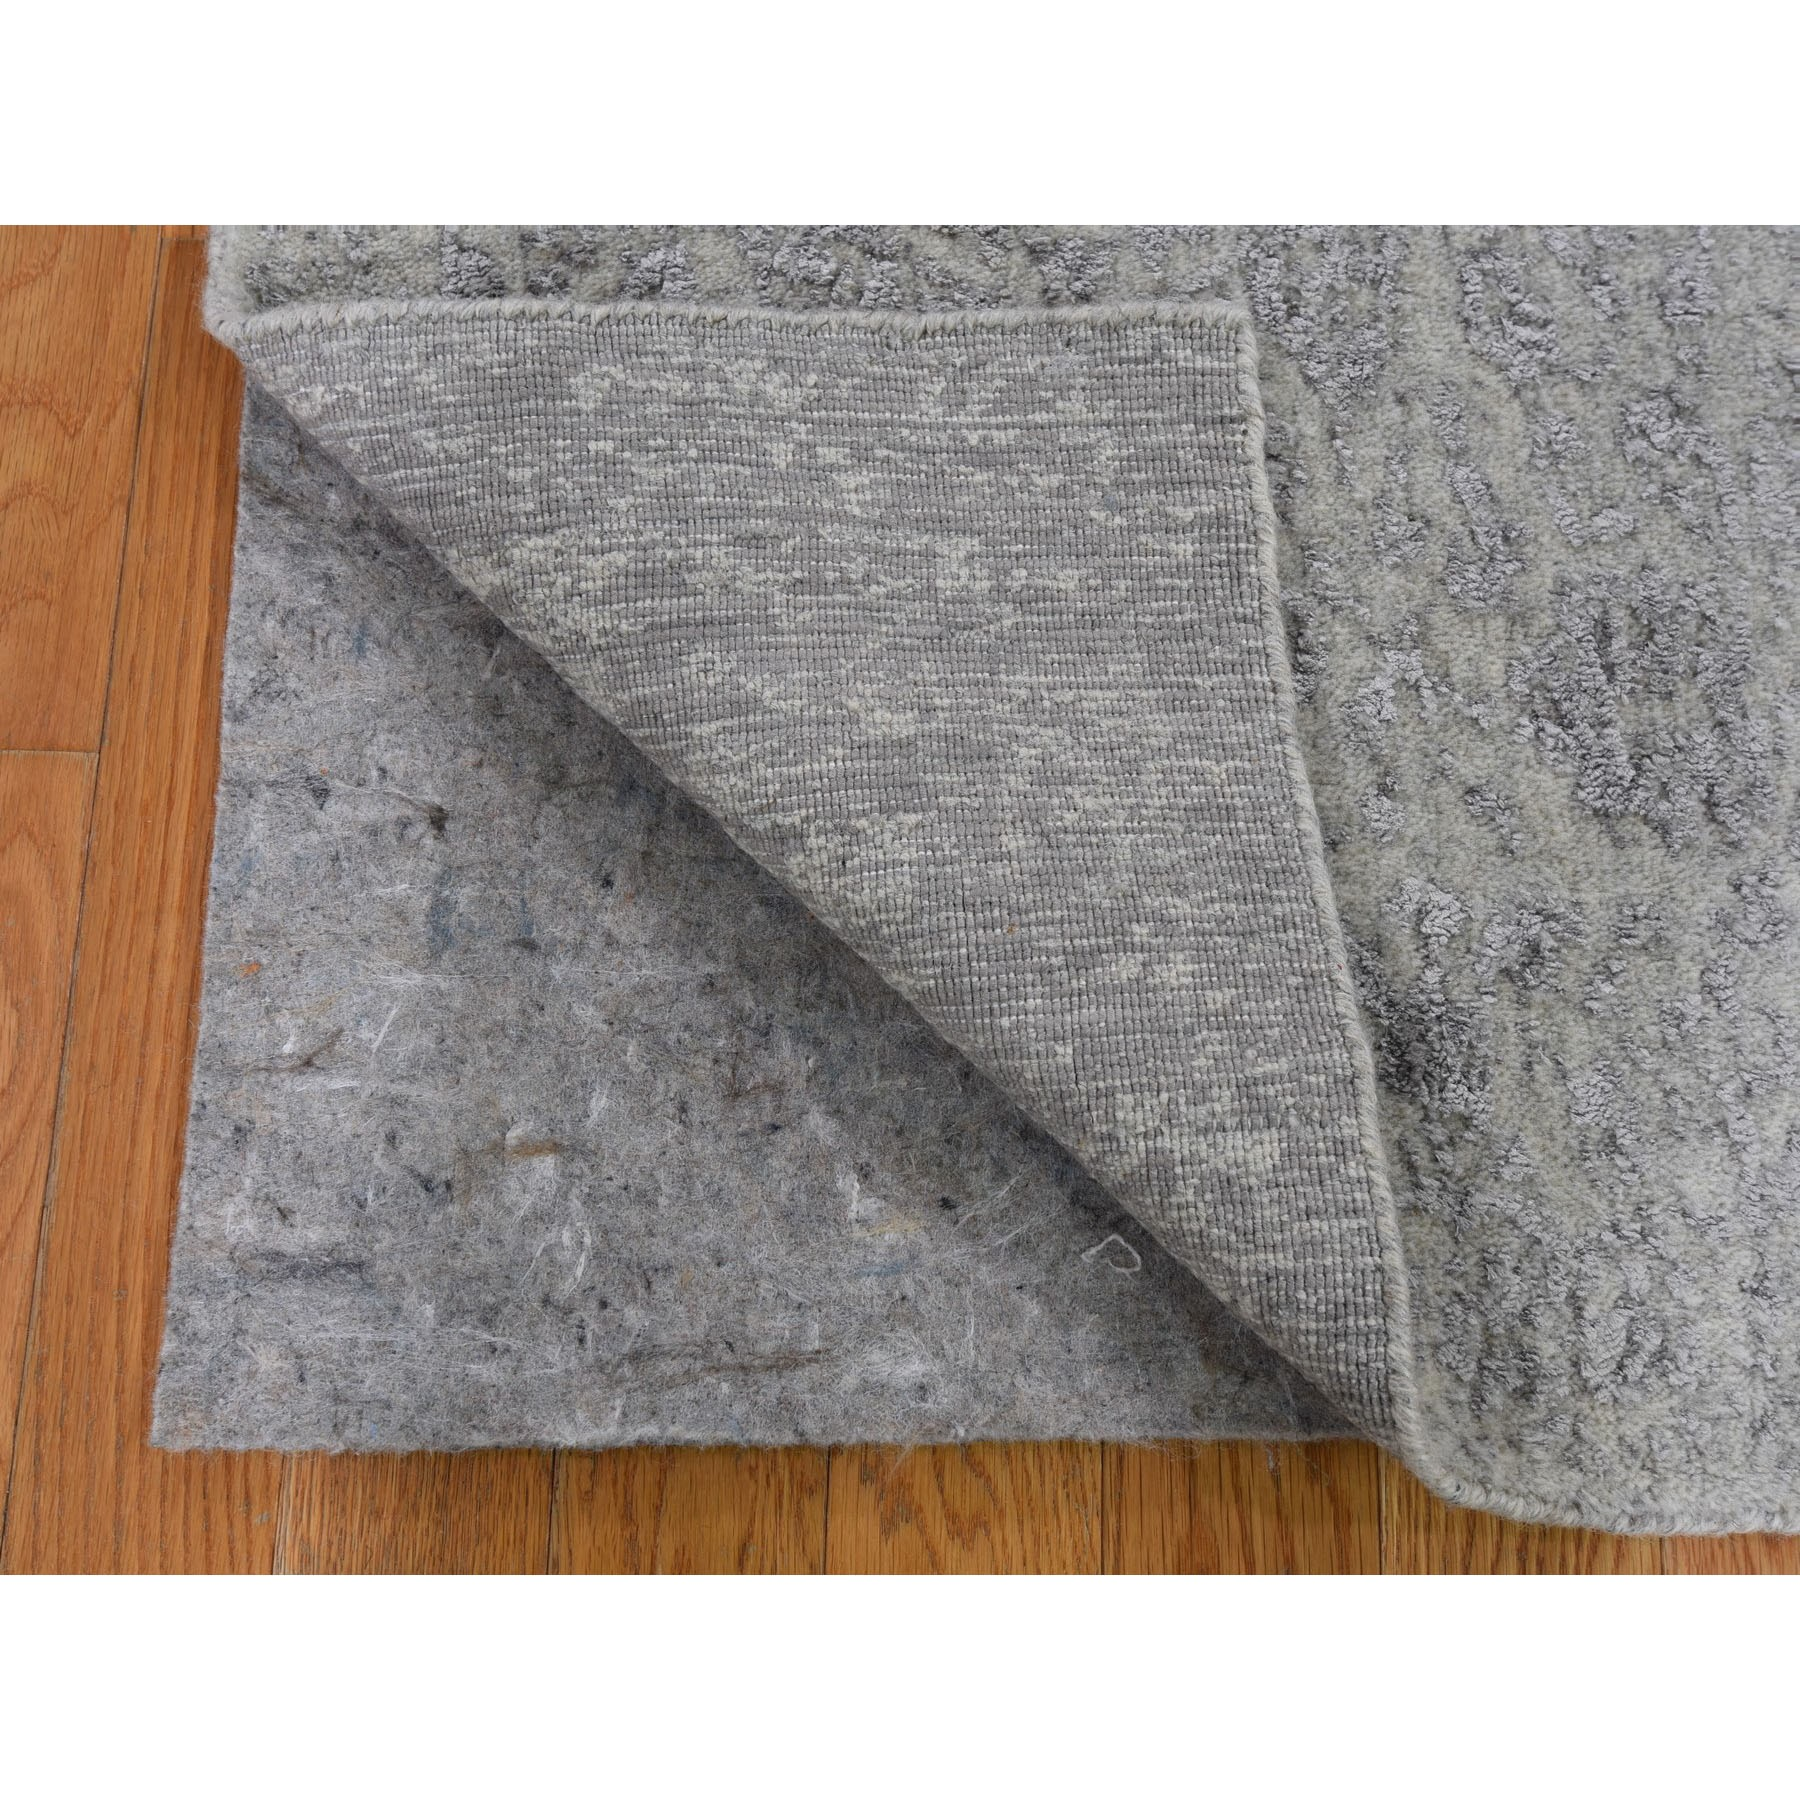 2'x3' Gray Wool And Silk Jacquard Hand loomed Oriental Rug